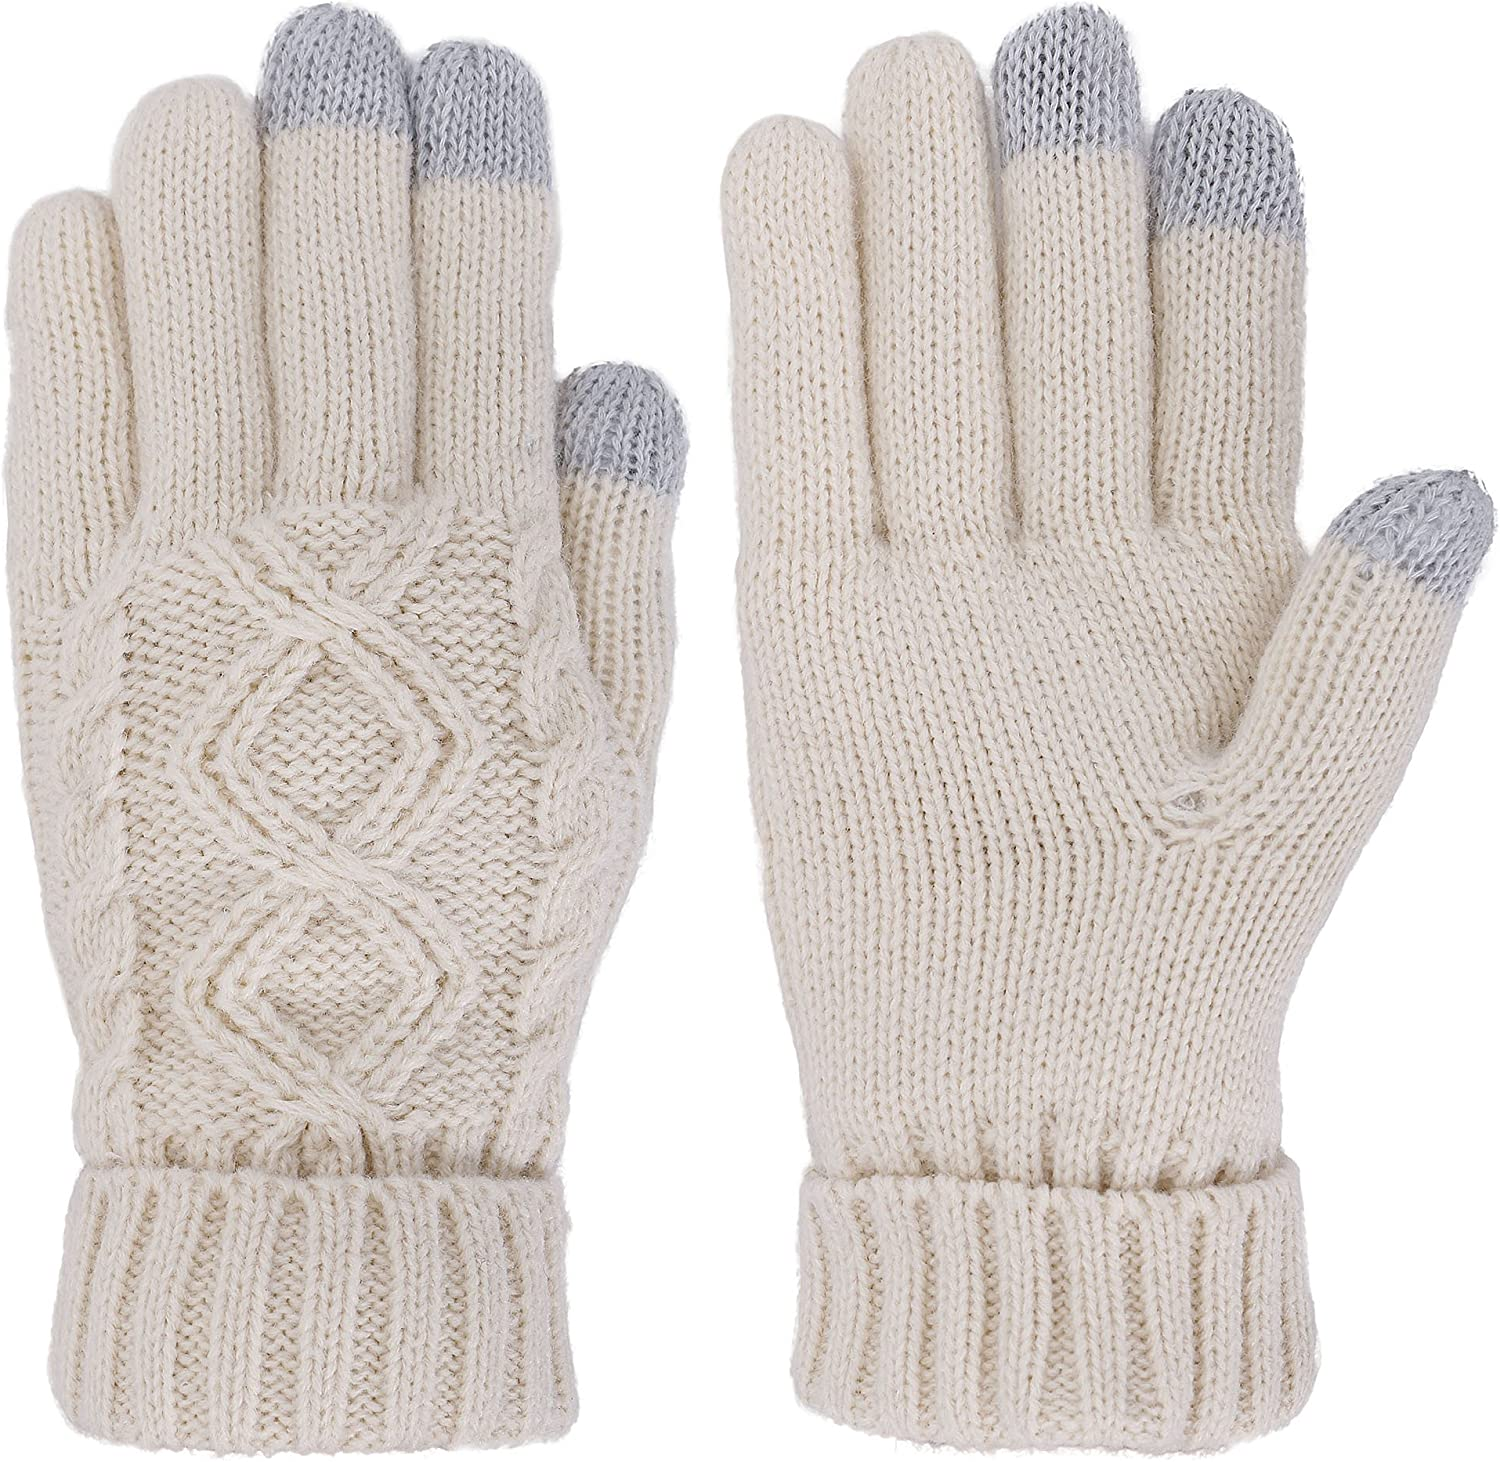 Lullaby Unisex Men Womens Touchscreen Sensitive Cable Knit Ourdoor Winter Gloves